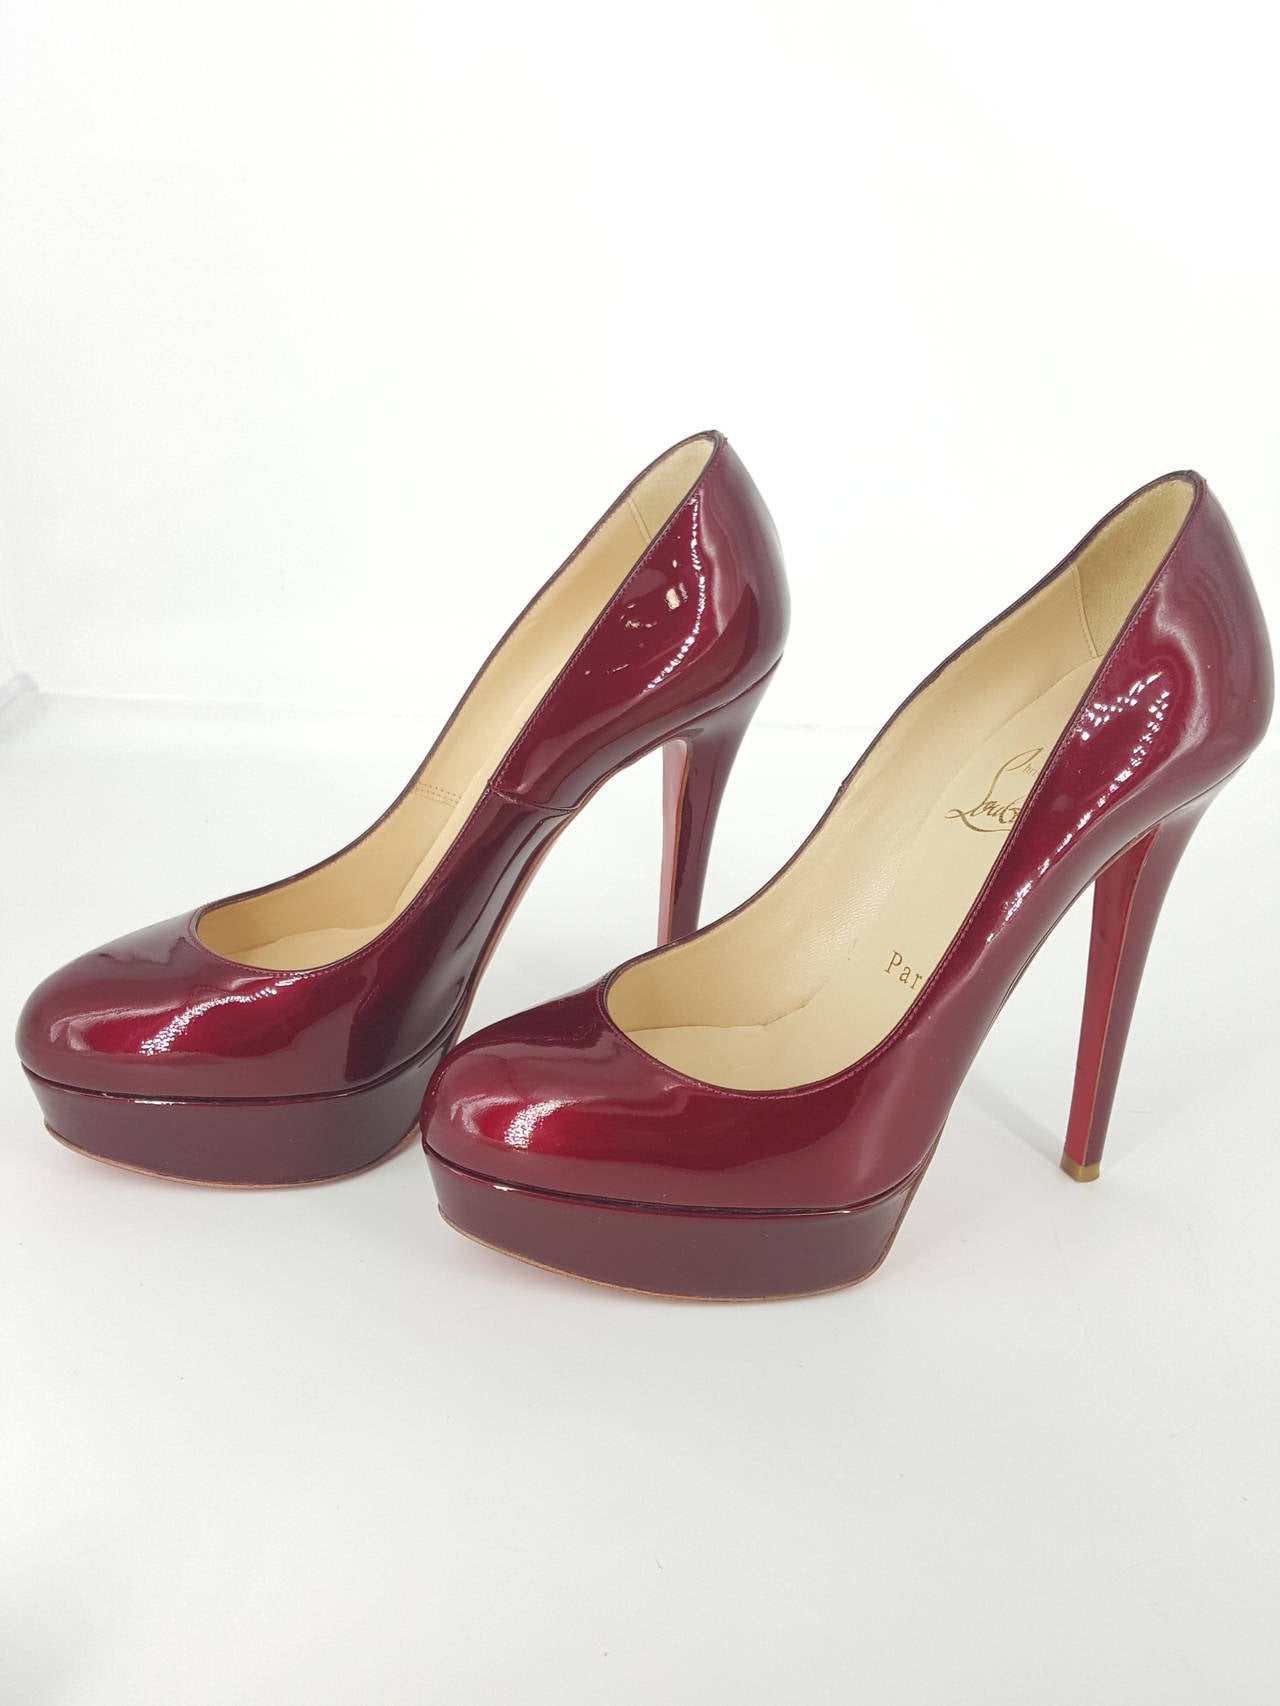 Christian Louboutin Candy Apple Red Patent Leather Pumps Size 36 1/2 2